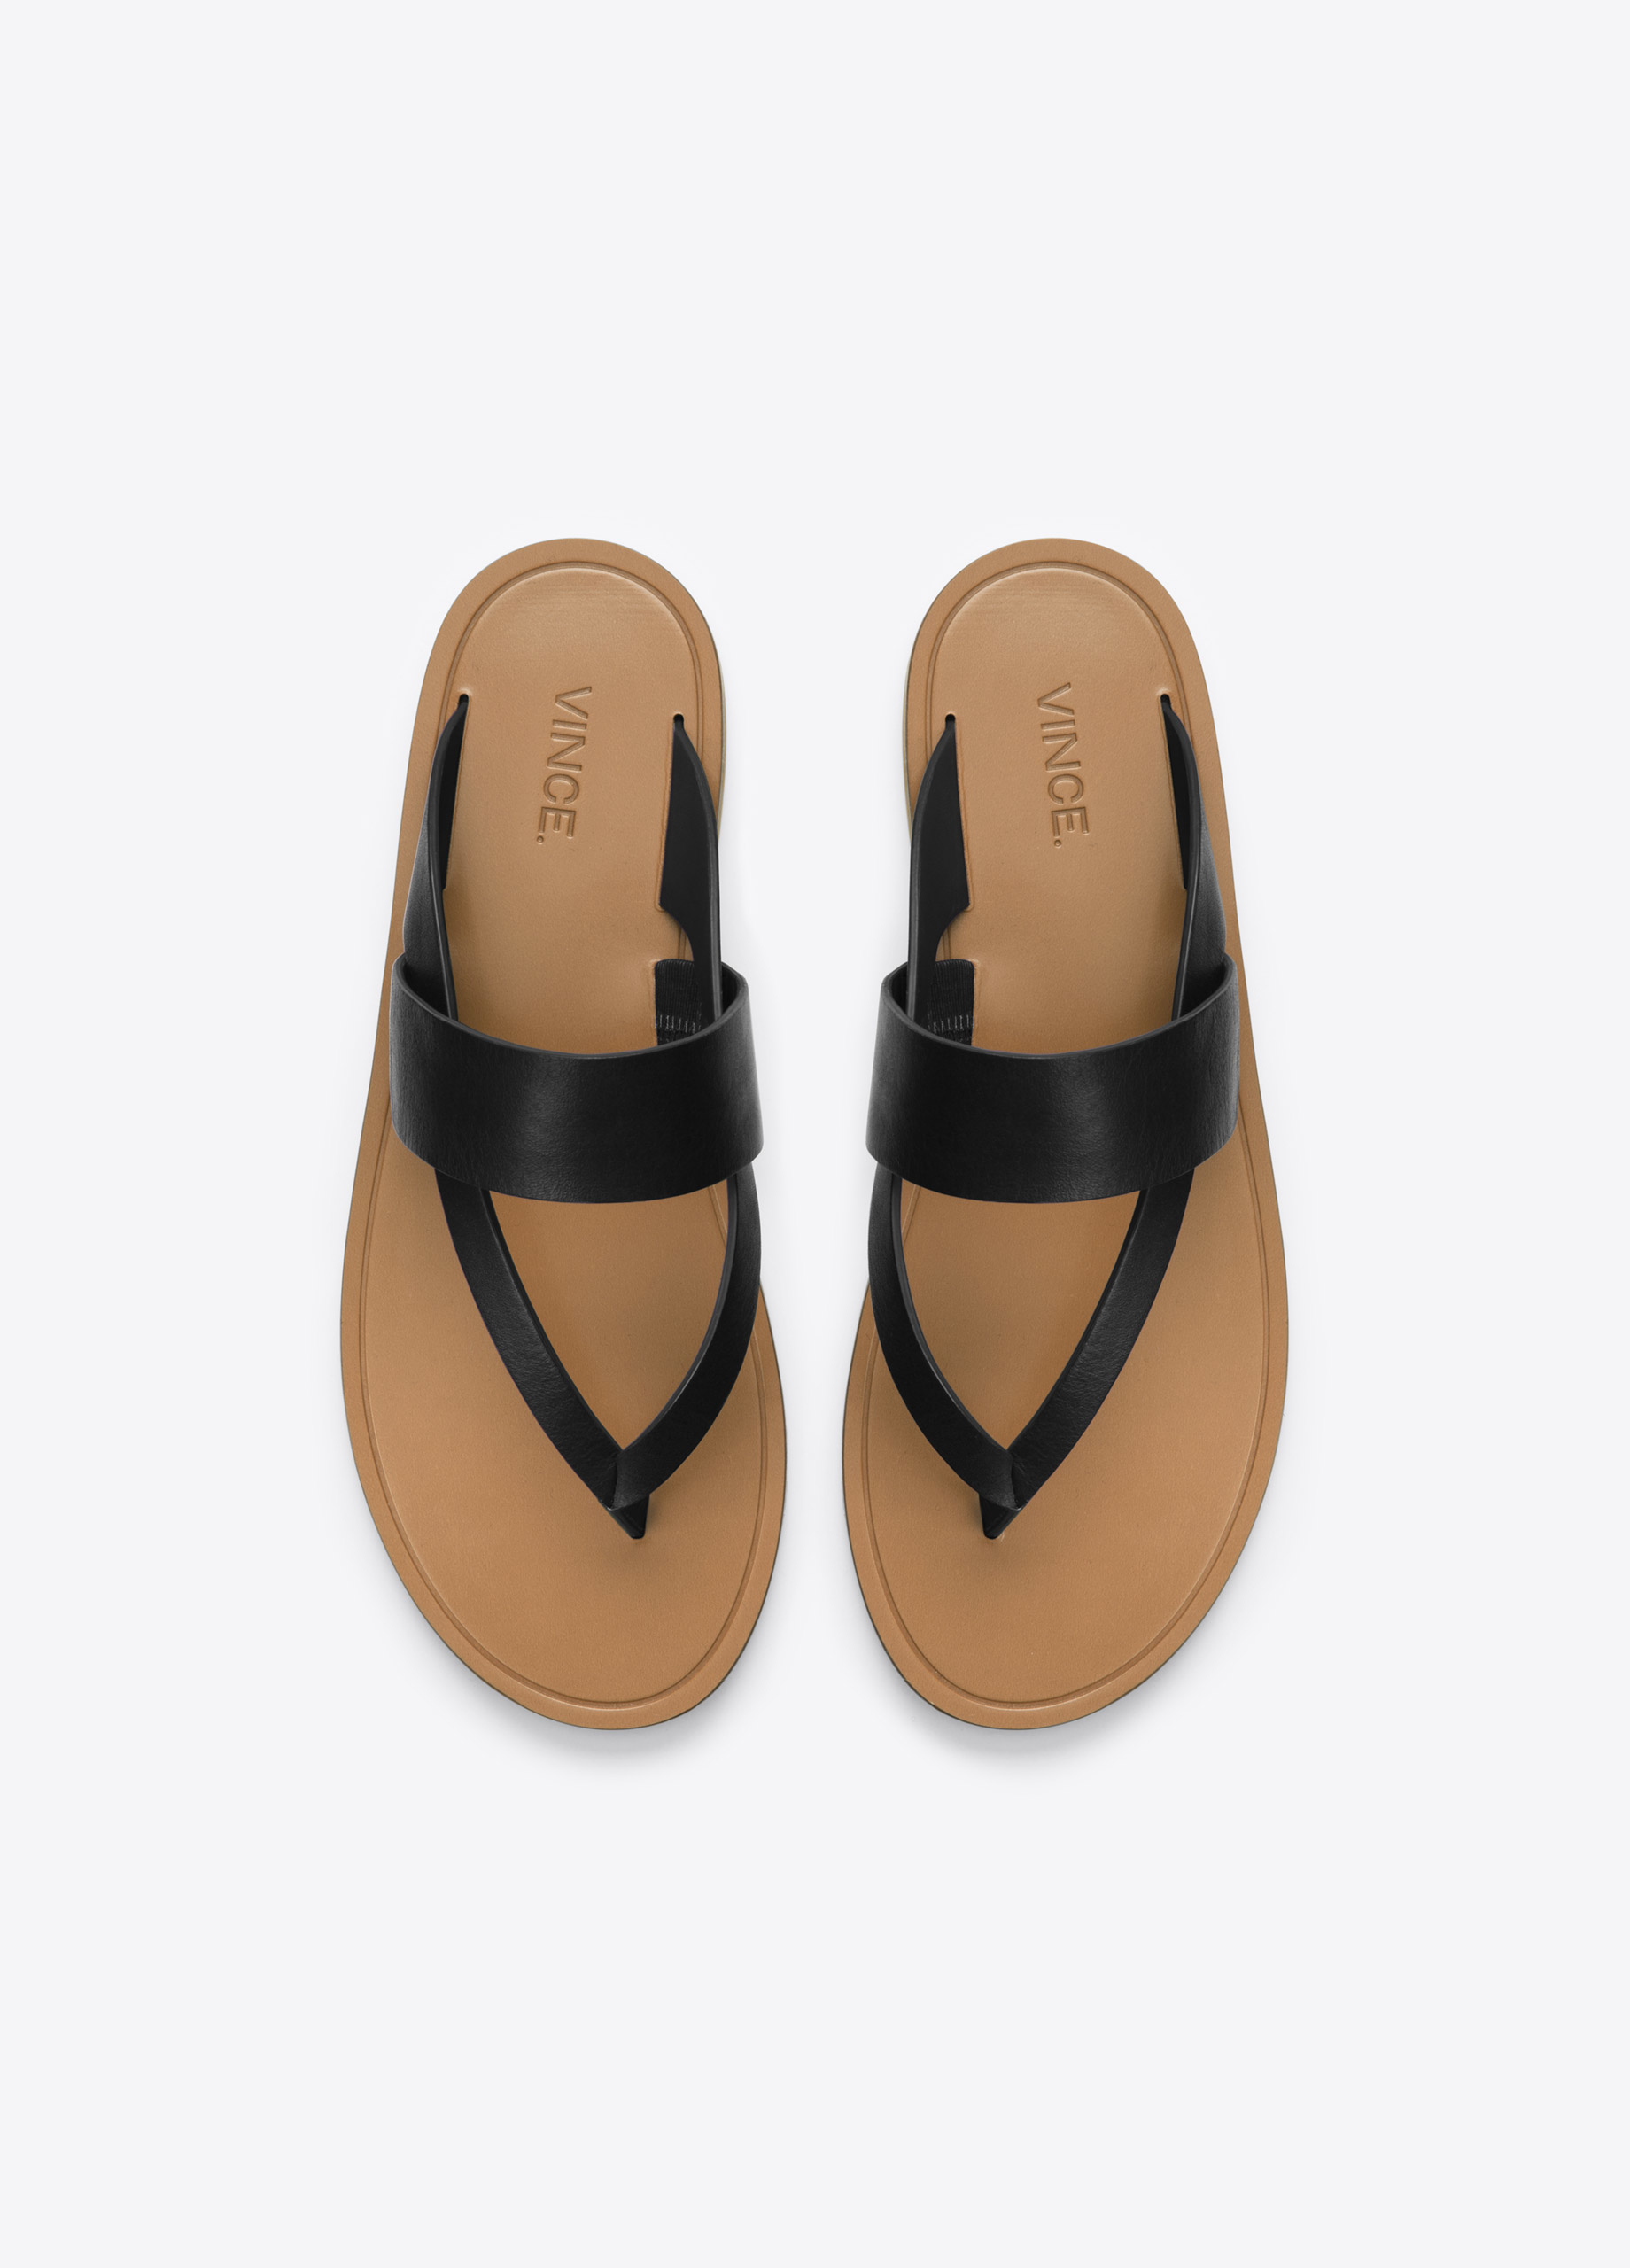 Vince Tess Leather Sandals In Black Lyst